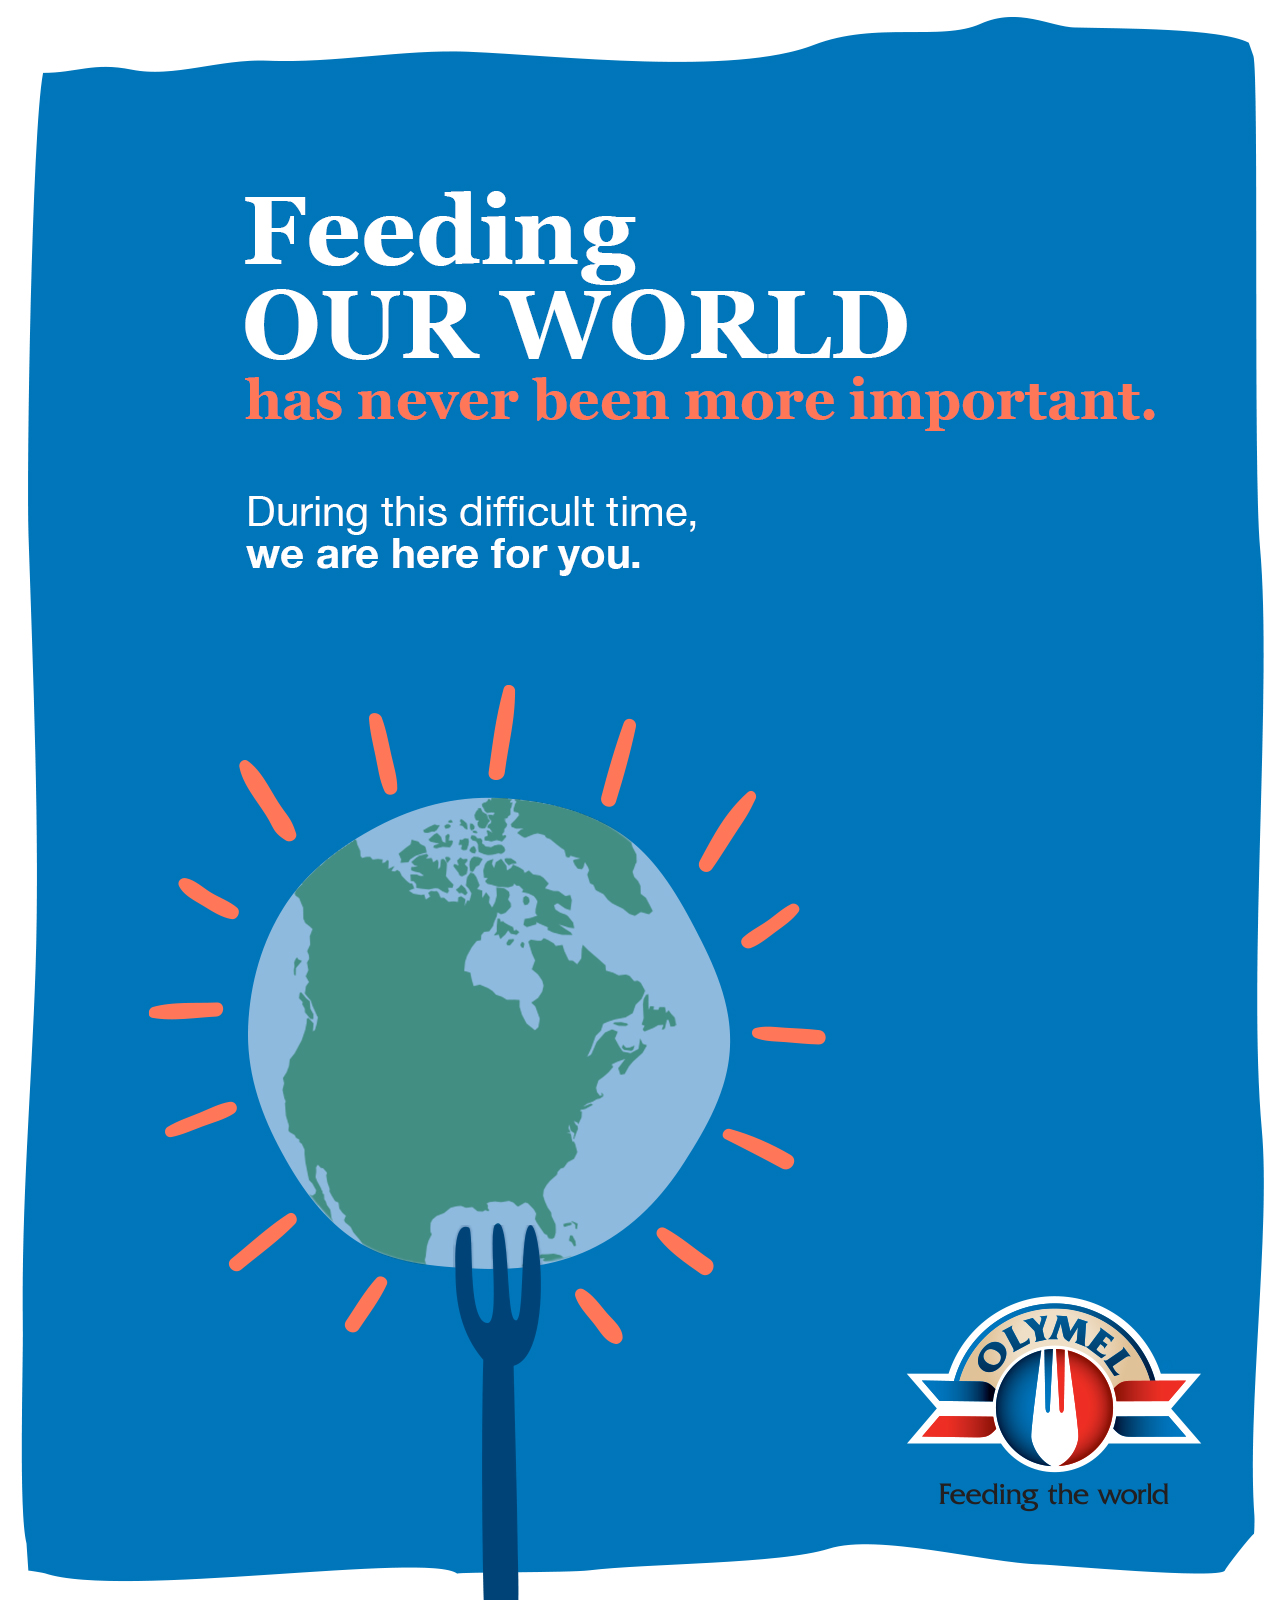 Feeding our world has never been more important